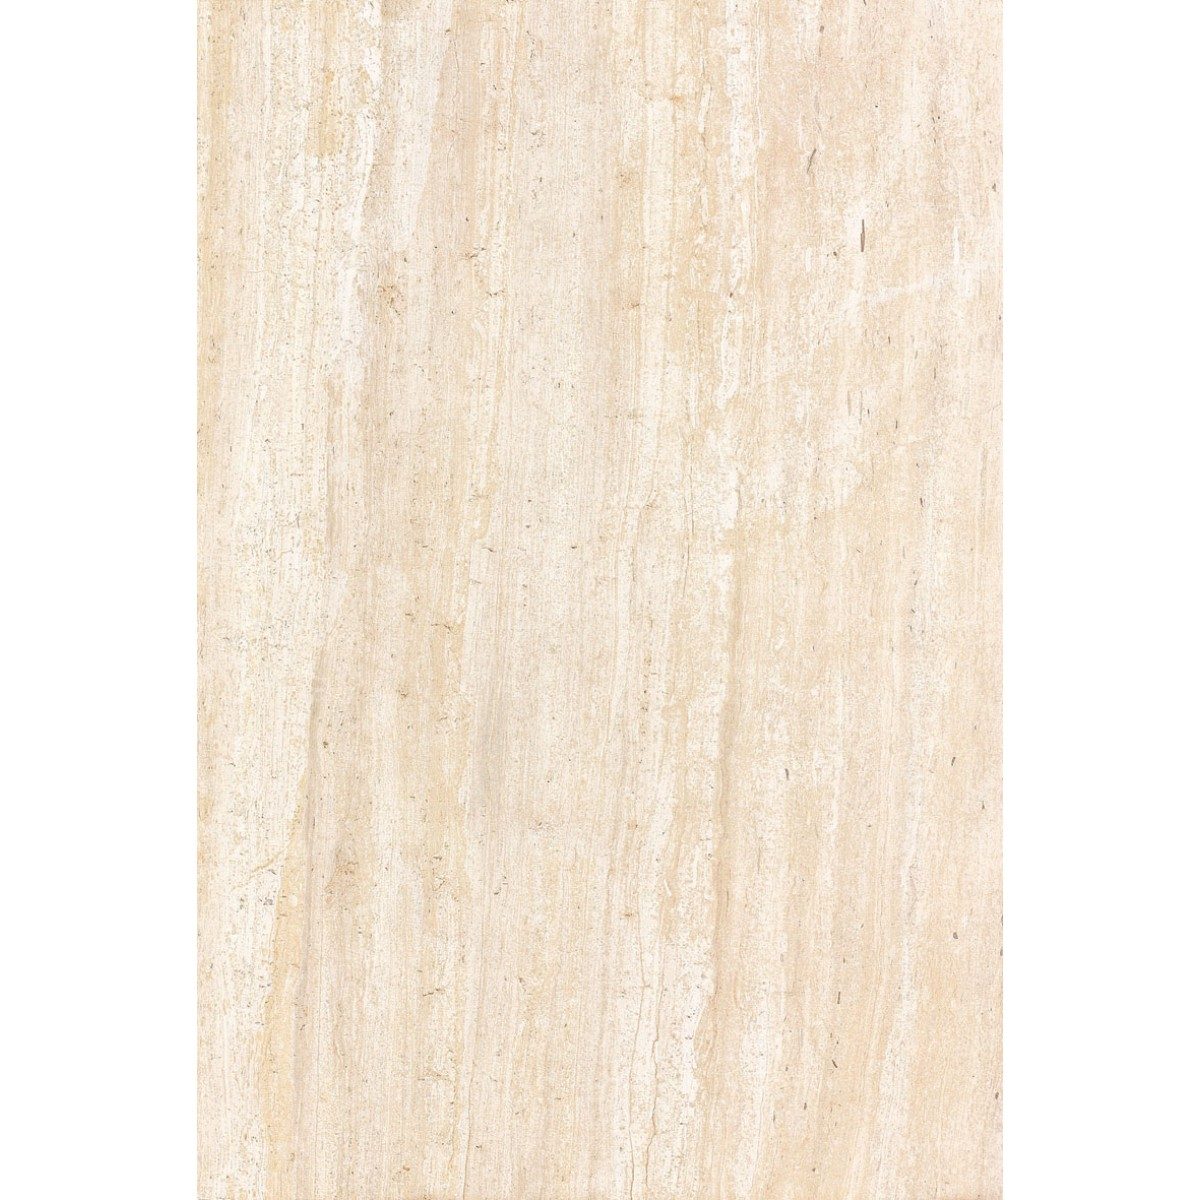 Light Ginkgo Beige, poliert, 900x600x12 mm